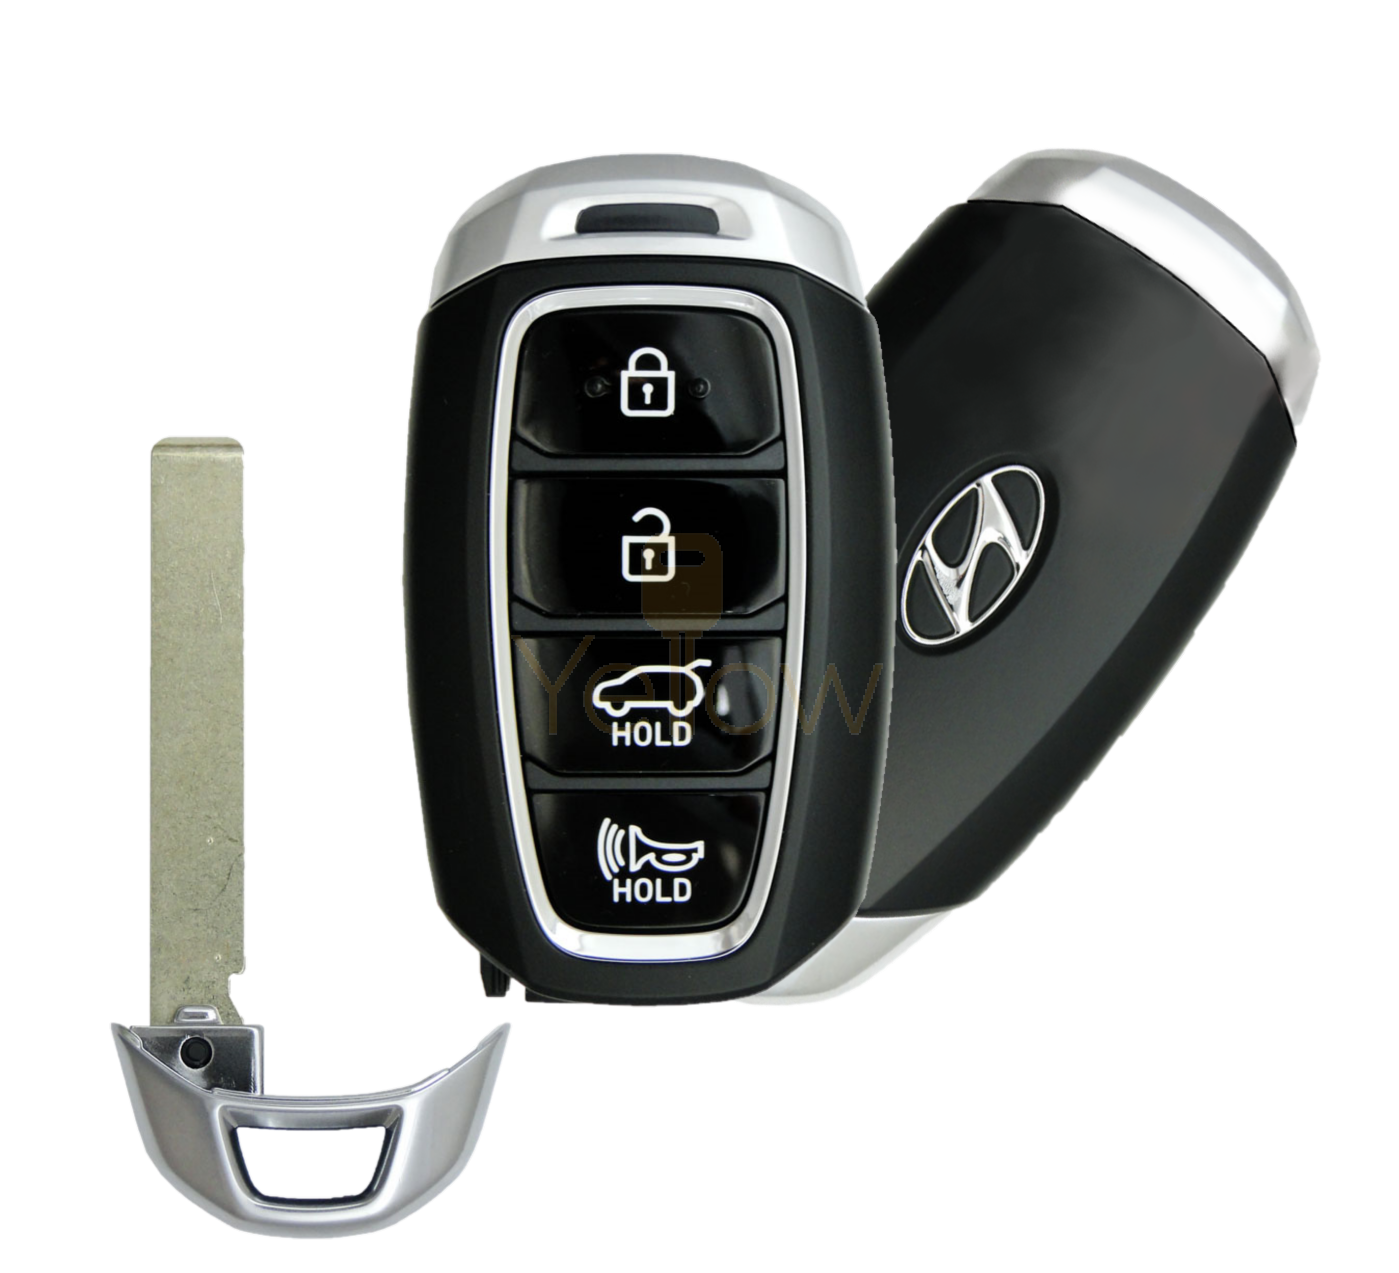 2019 HYUNDAI SANTA FE SMART KEY 4B HATCH PN 95440-S1000